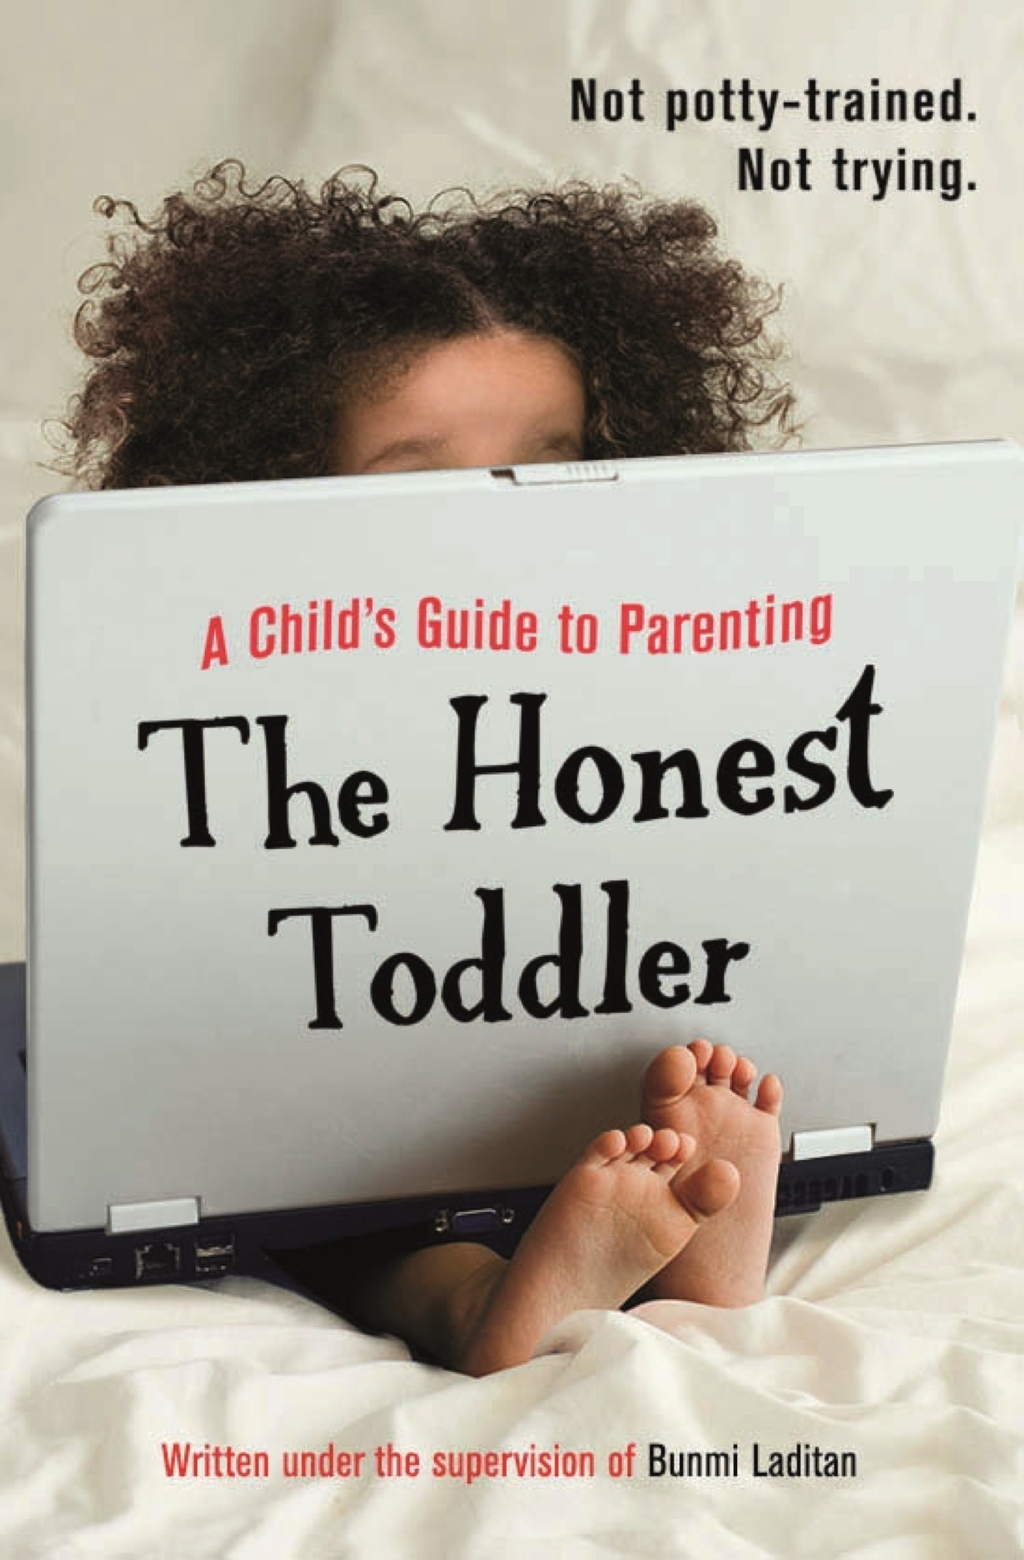 The Honest Toddler A Child?s Guide to Parenting